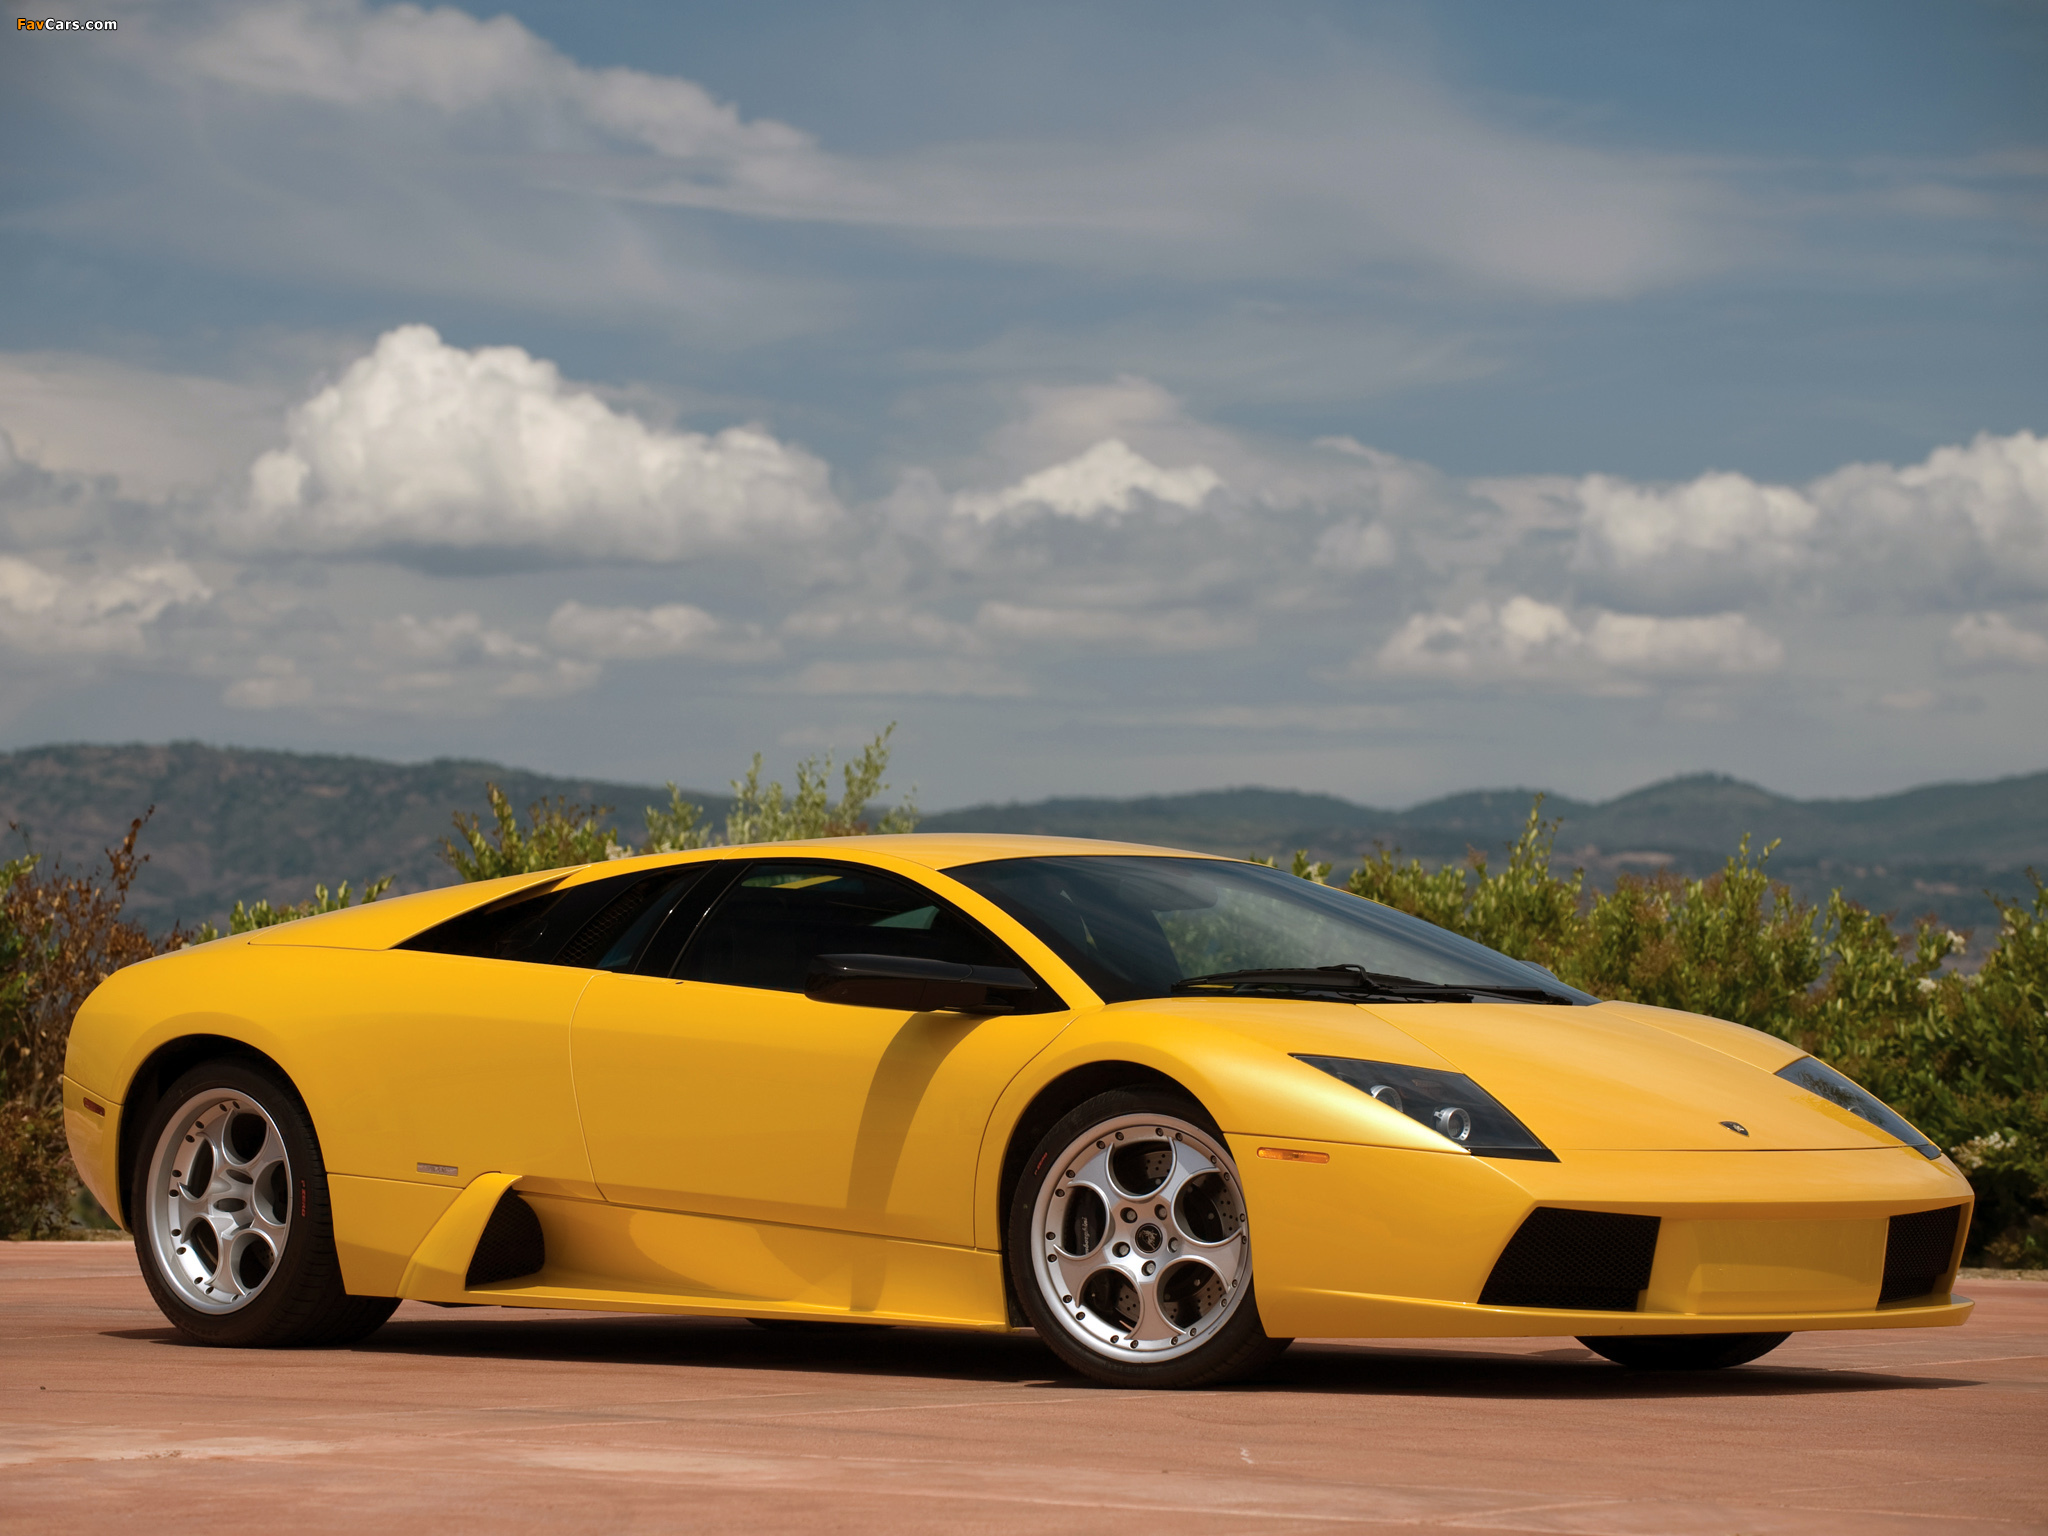 Lamborghini Murcielago Us Spec 2001 06 Wallpapers 2048x1536